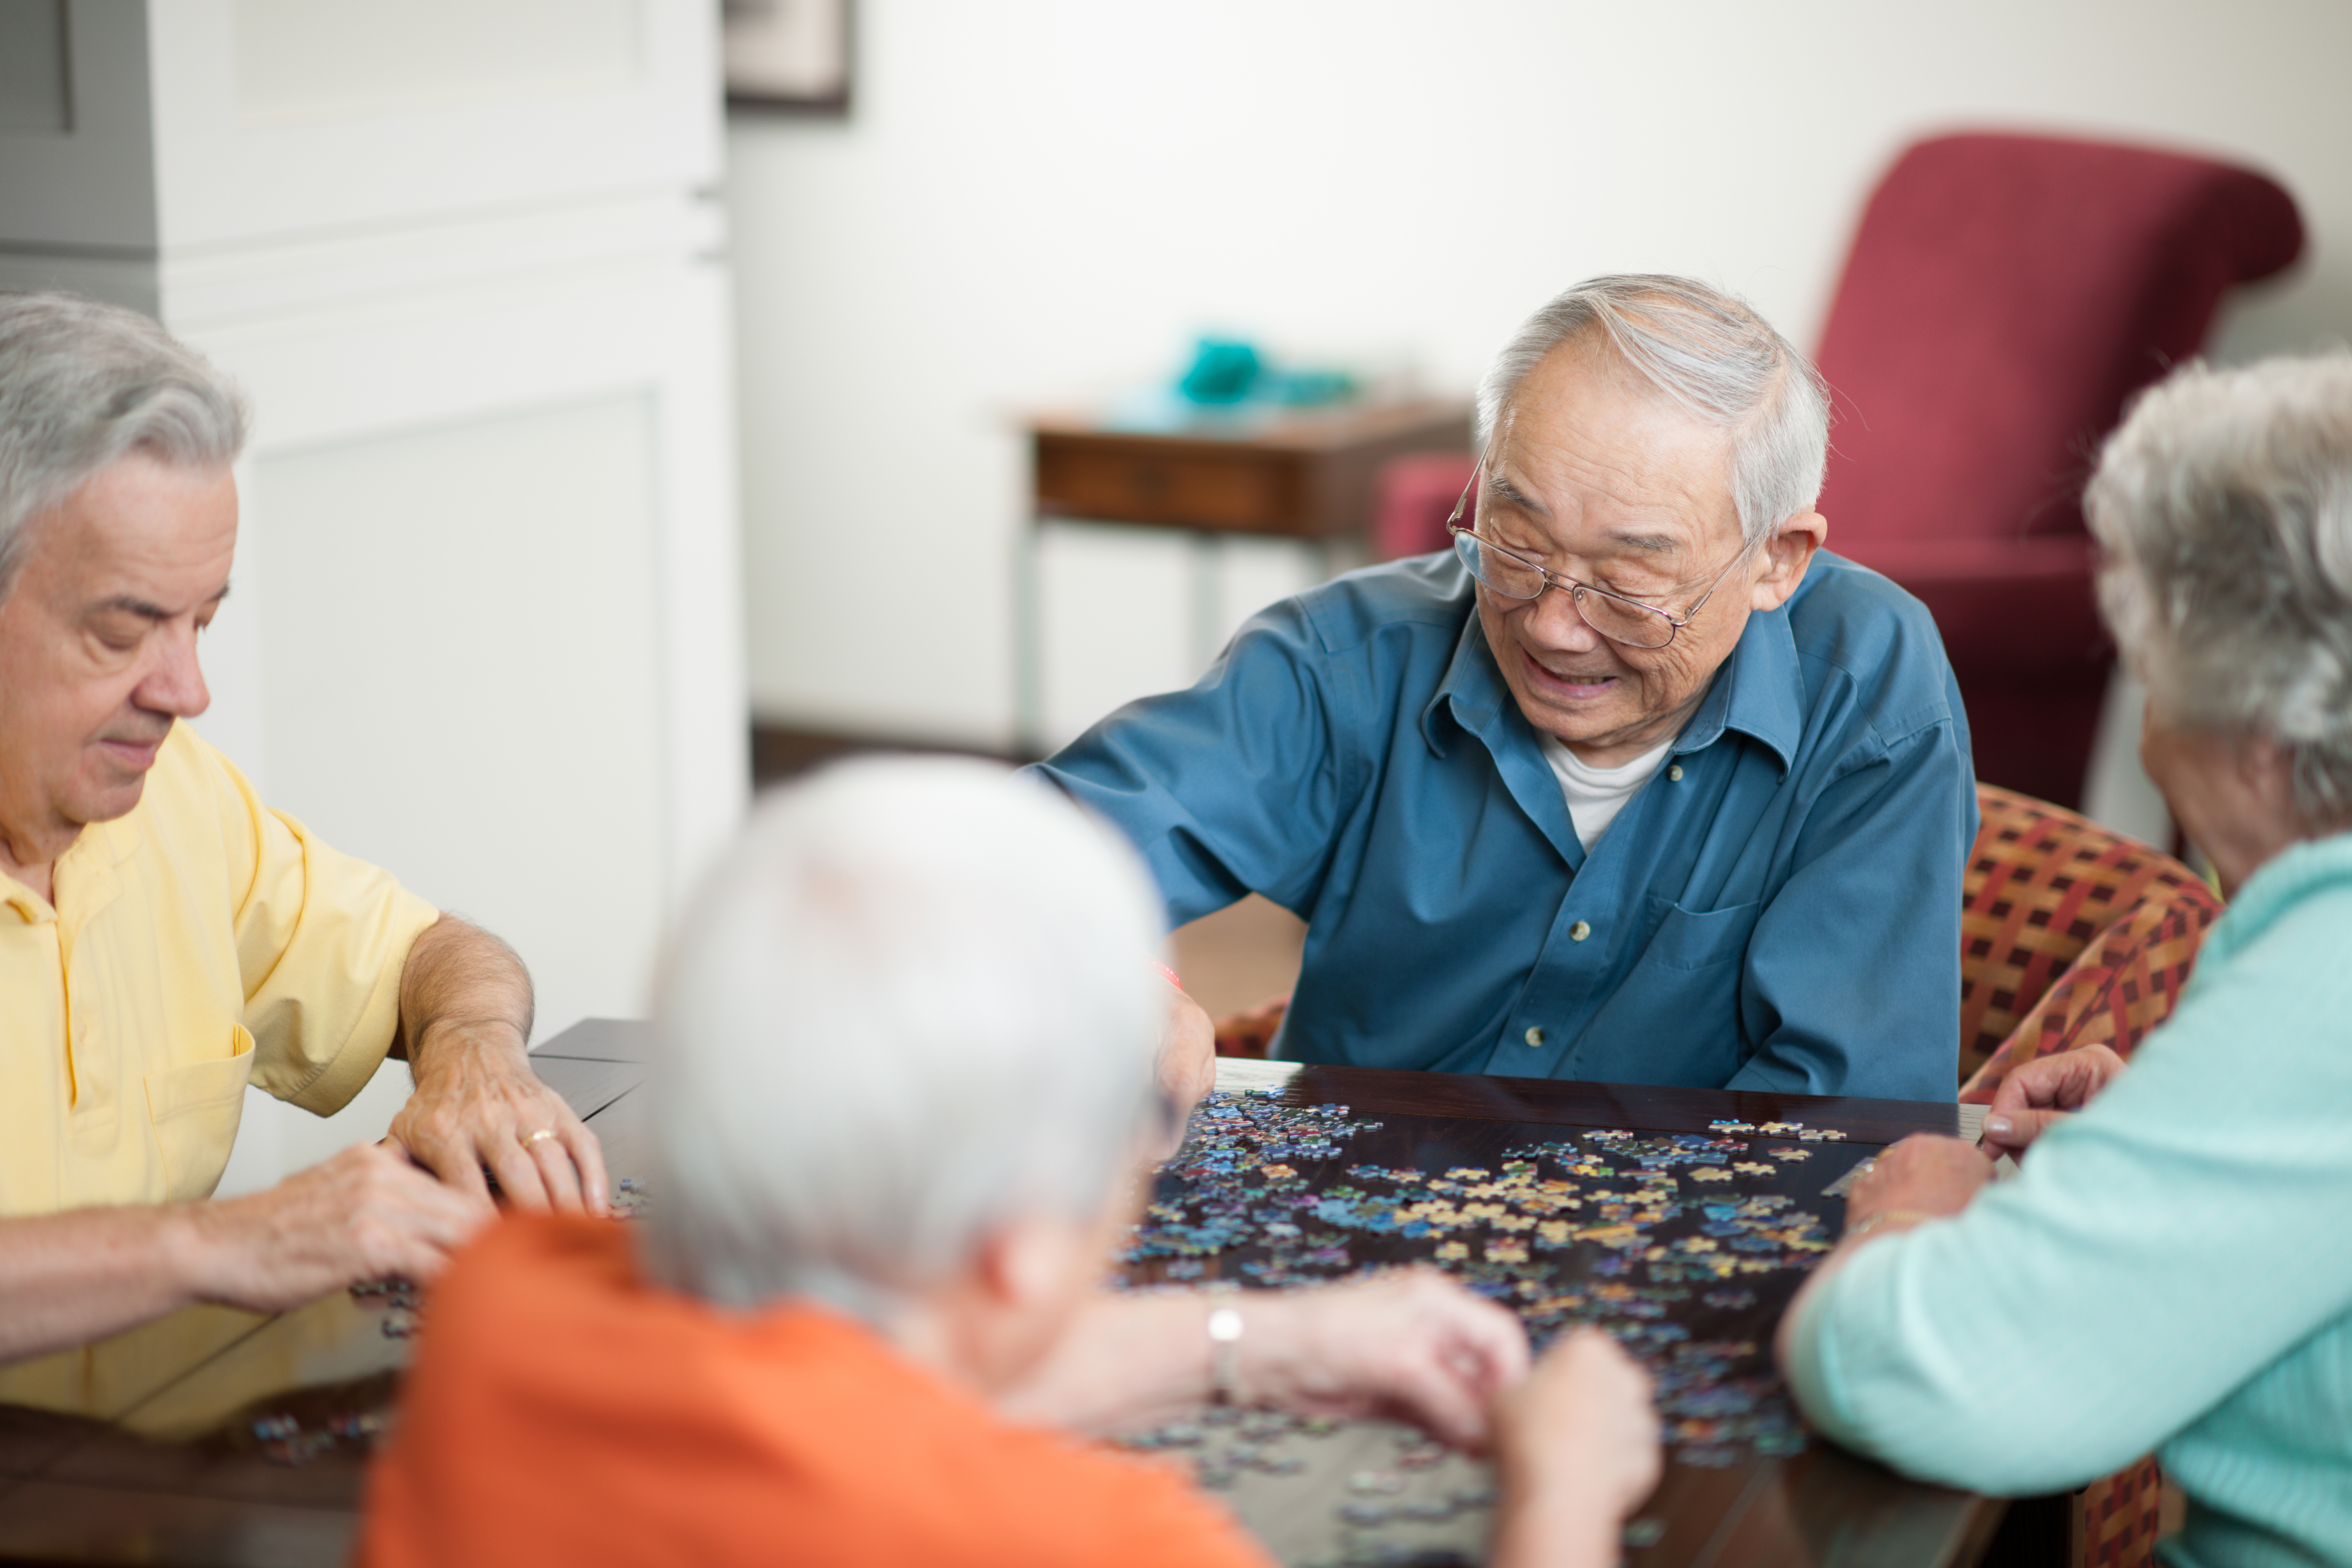 Group of older people doing a puzzle together